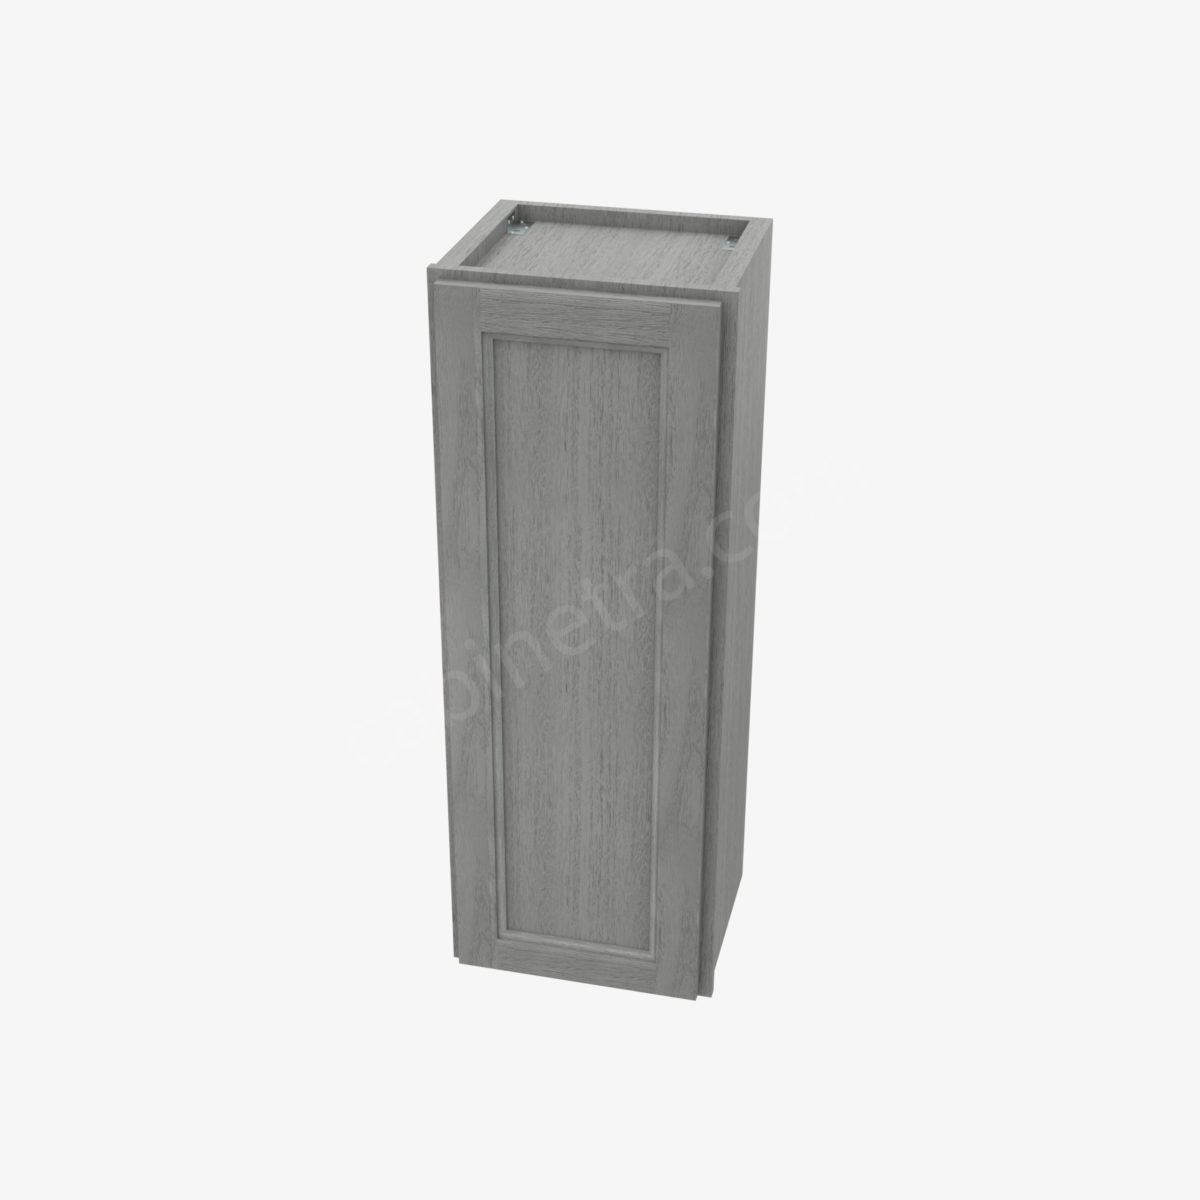 TG W1542 3 Forevermark Midtown Grey Cabinetra scaled